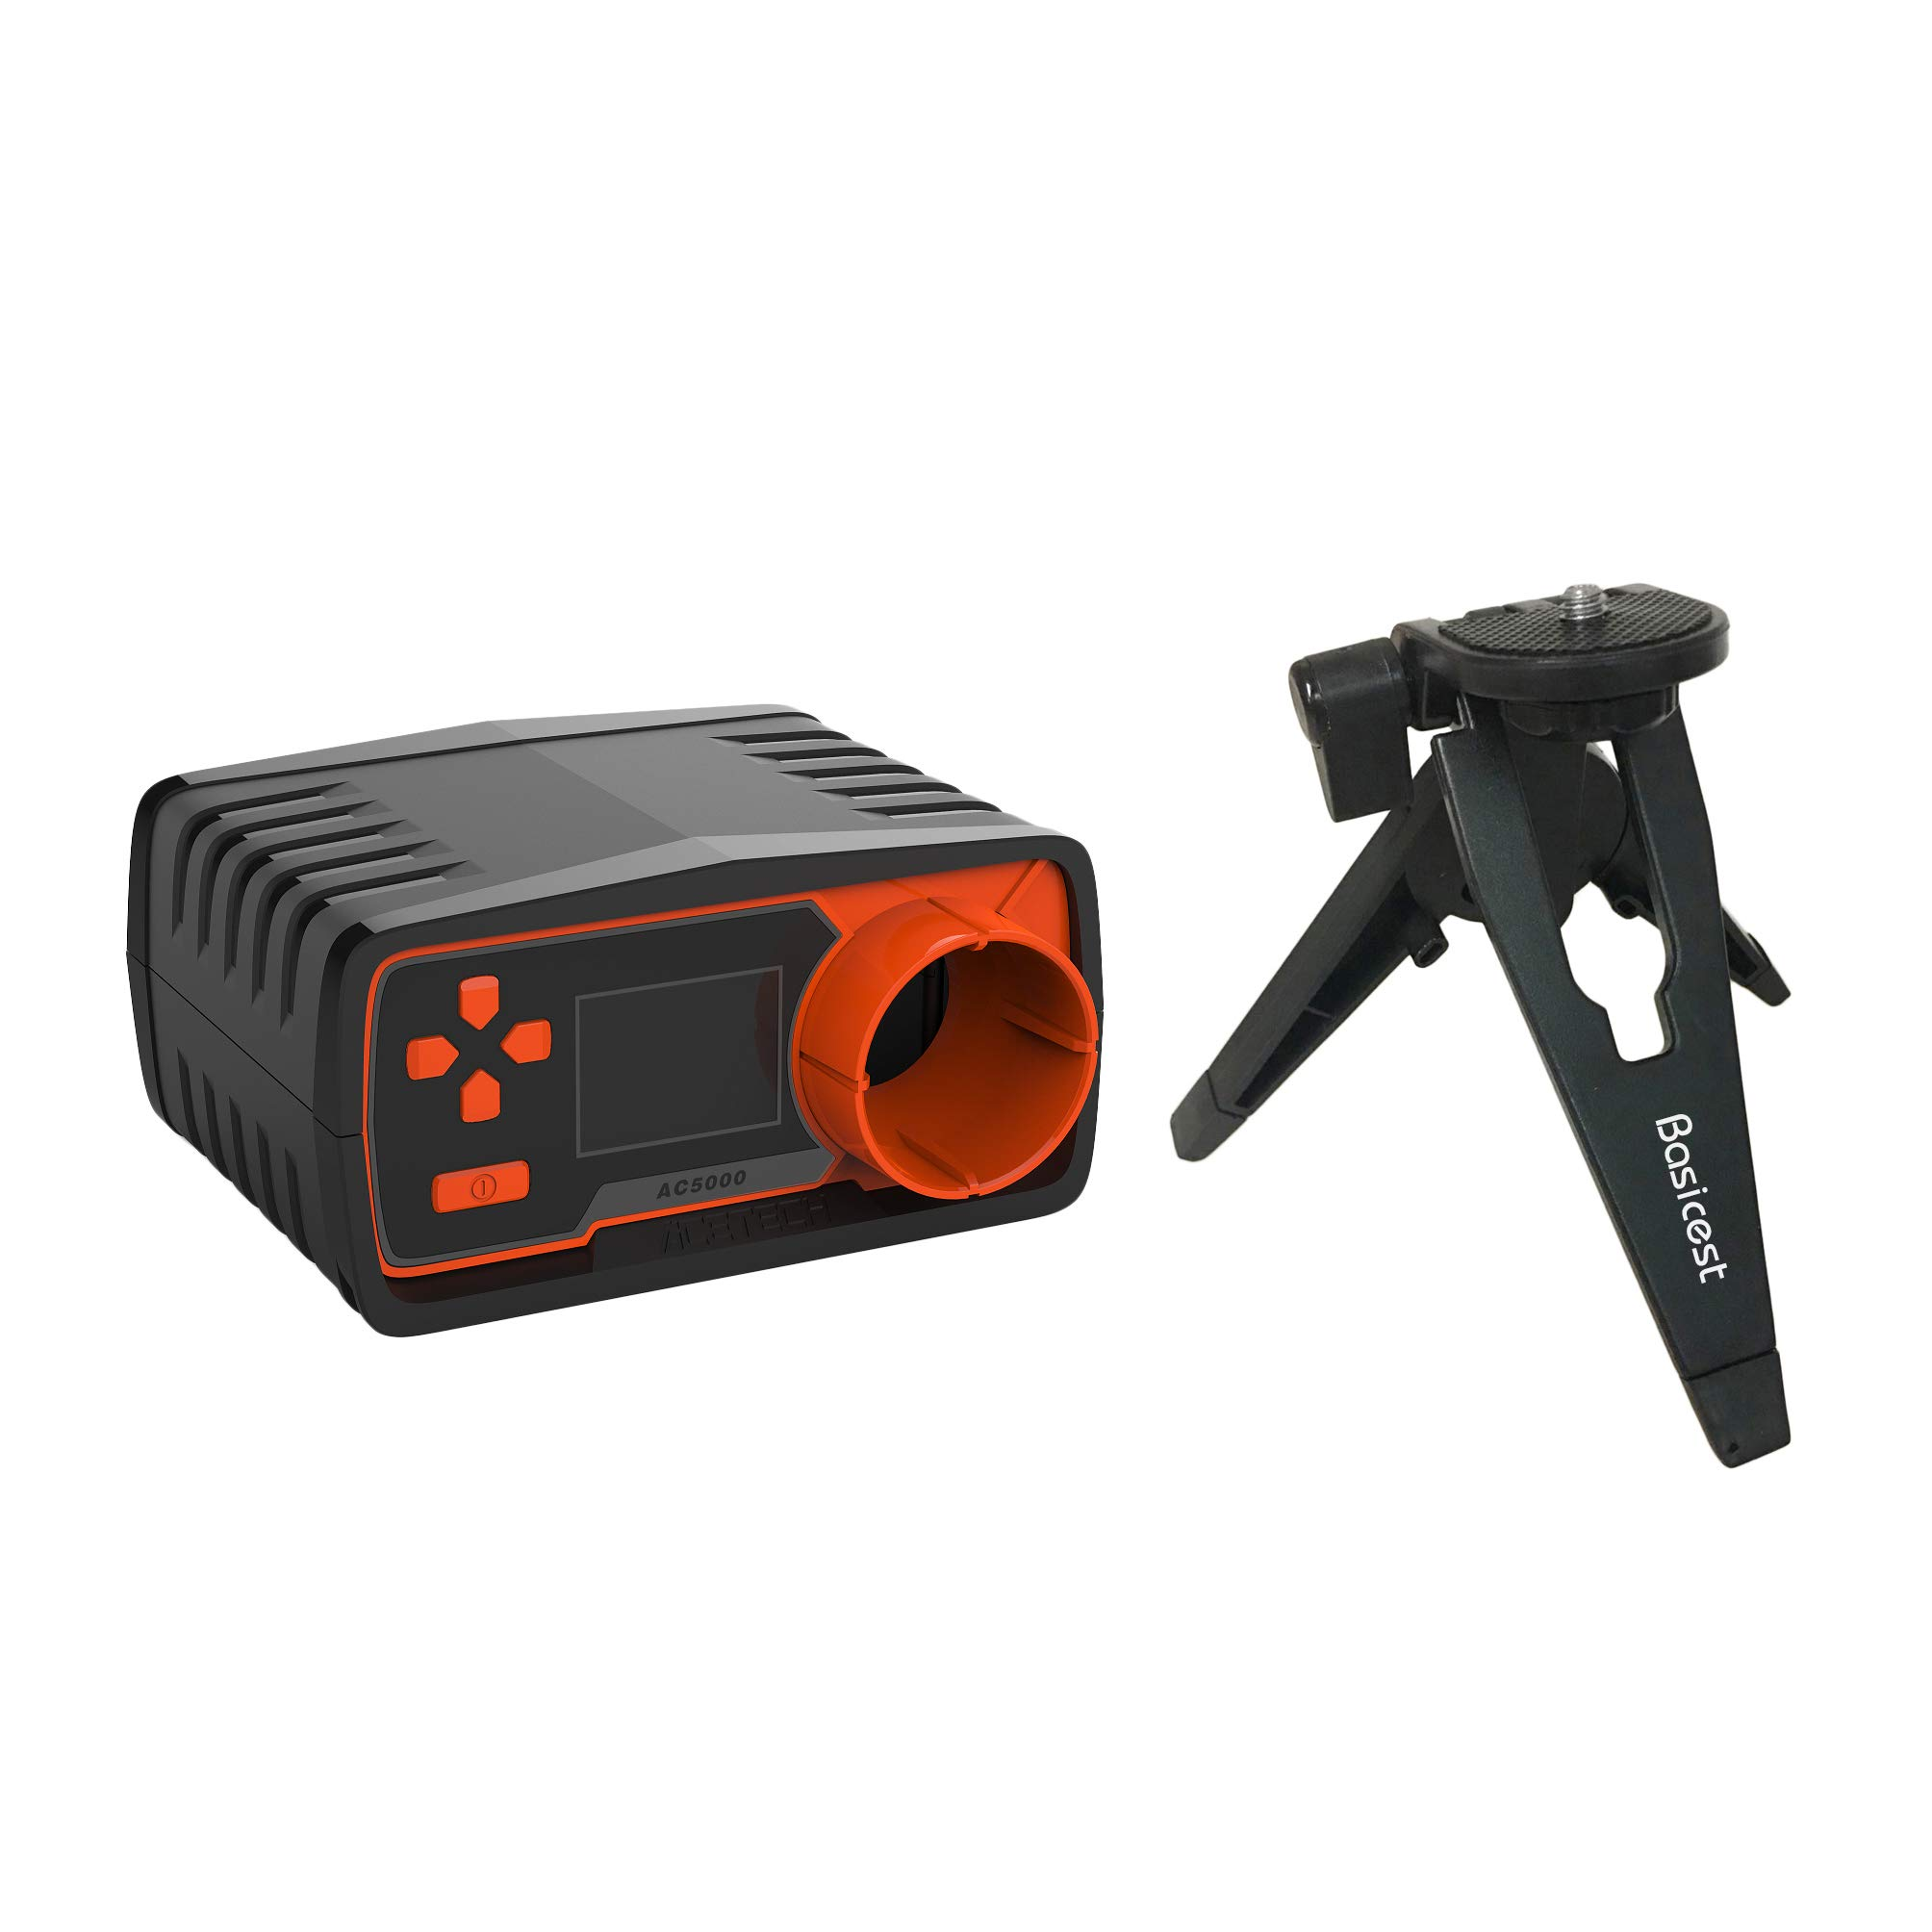 Basicest Acetech AC5000 Airsoft Shooting Chronograph with a Tripod by ACETECH